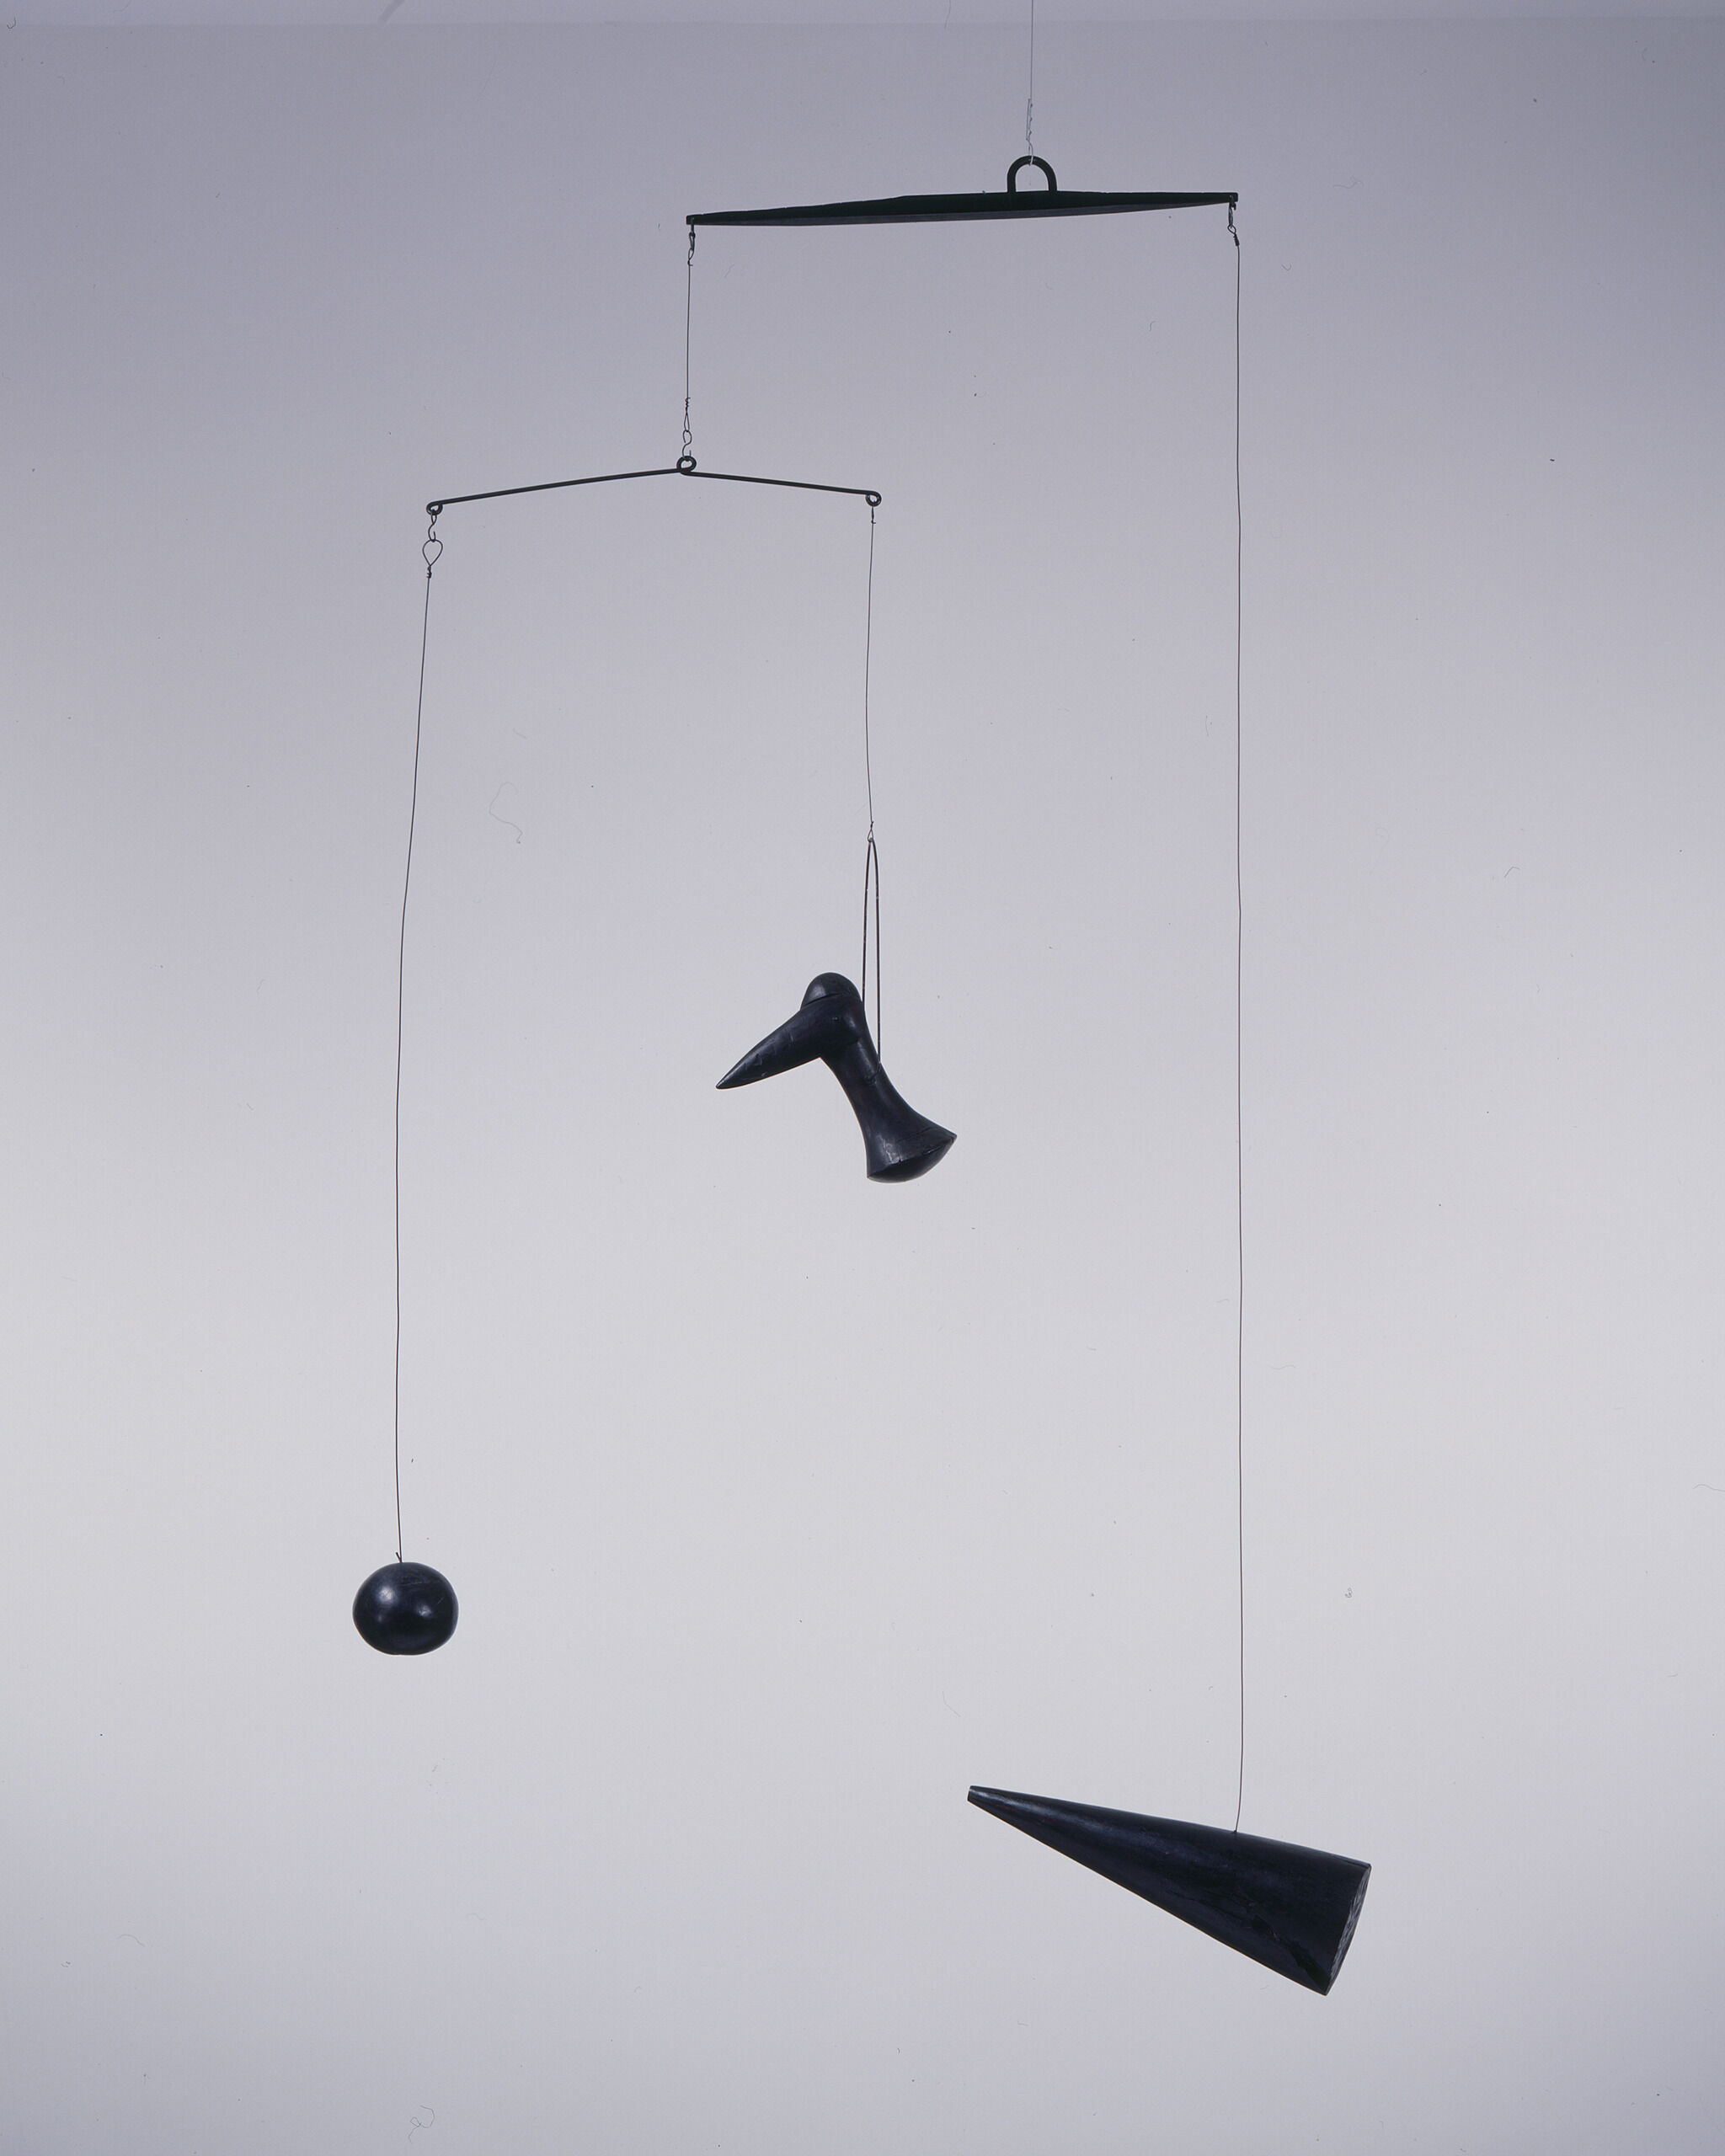 Three black objects hanging from a mobile.